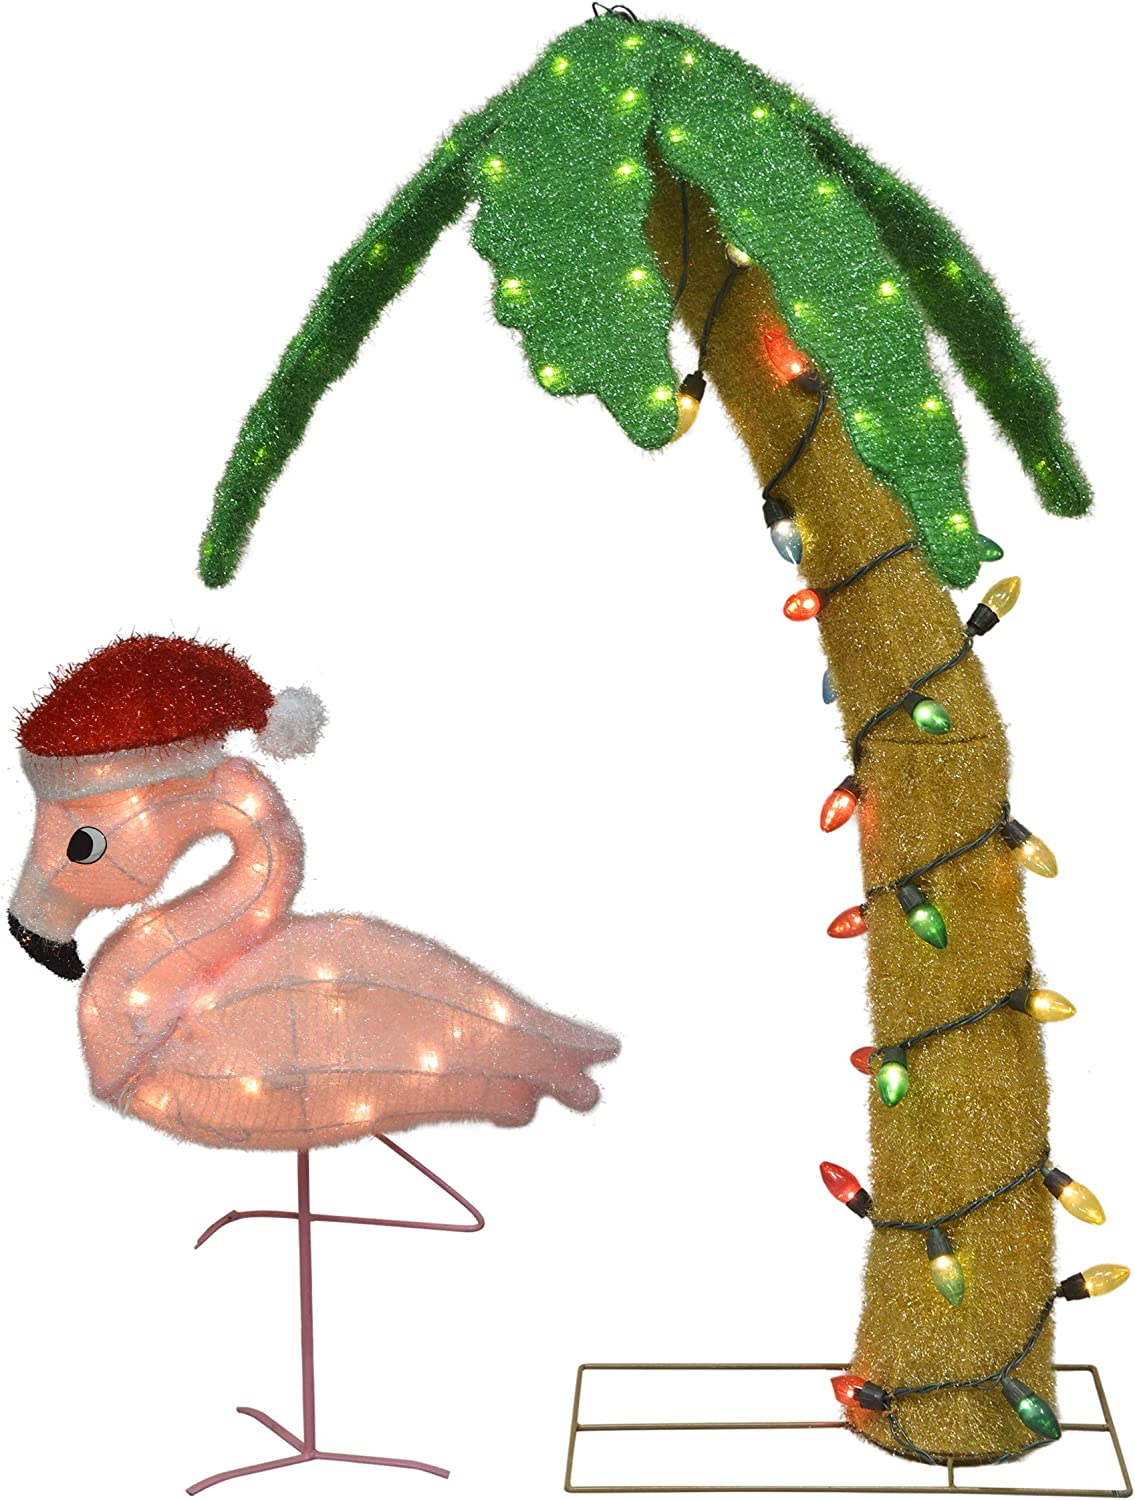 TisYourSeason 42 inch Lighted LED Palm Tree and 24 inch Flamingo with Santa Hat Outdoor Christmas Decor